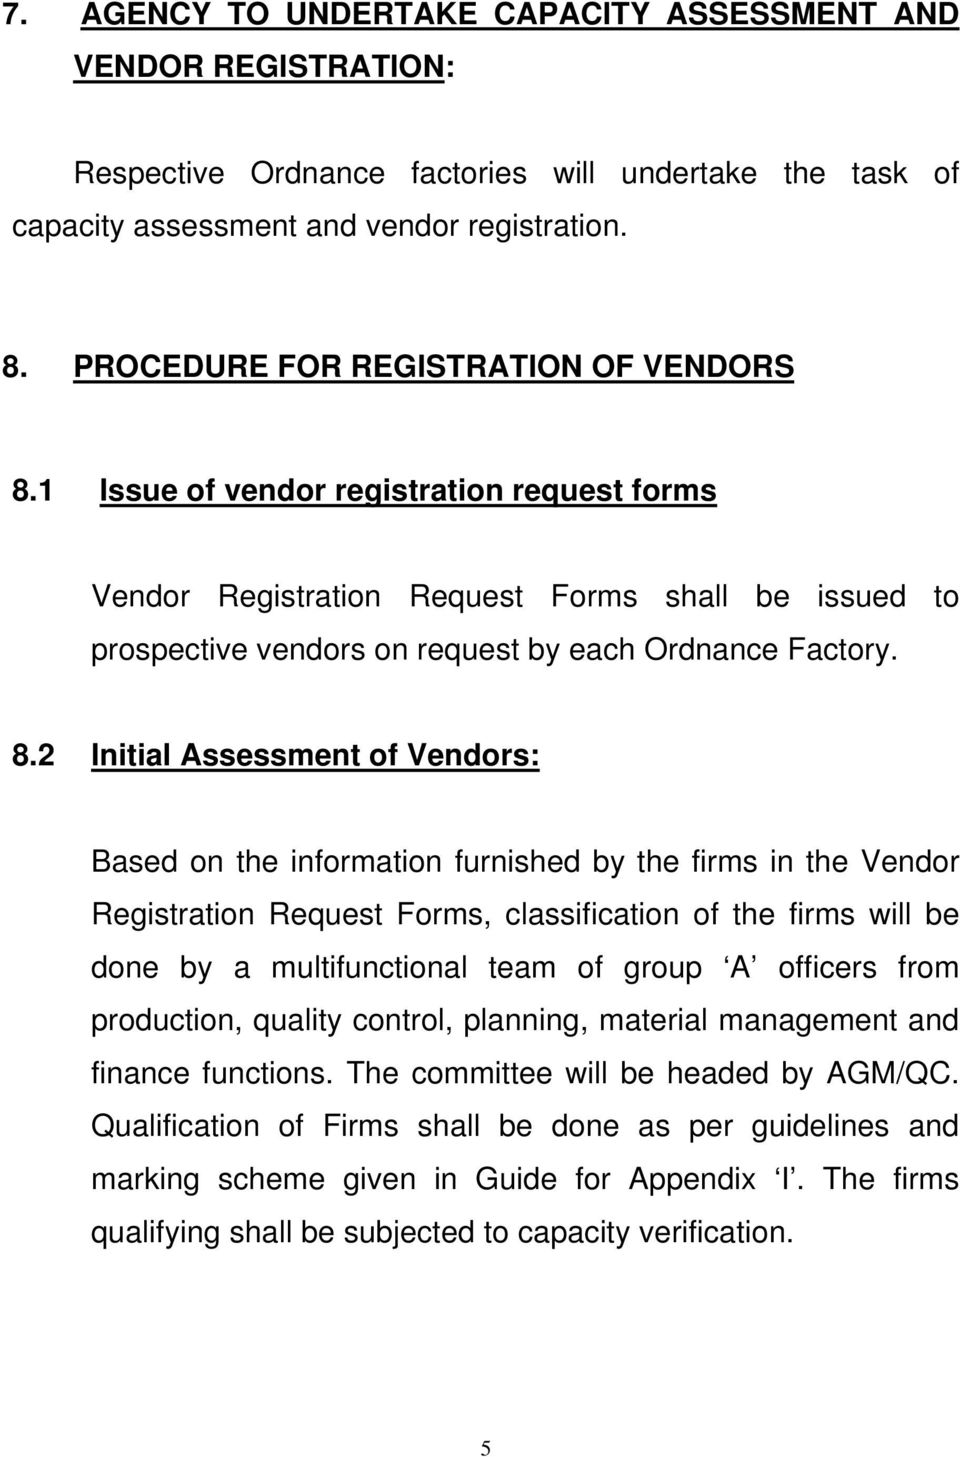 1 Issue of vendor registration request forms Vendor Registration Request Forms shall be issued to prospective vendors on request by each Ordnance Factory. 8.